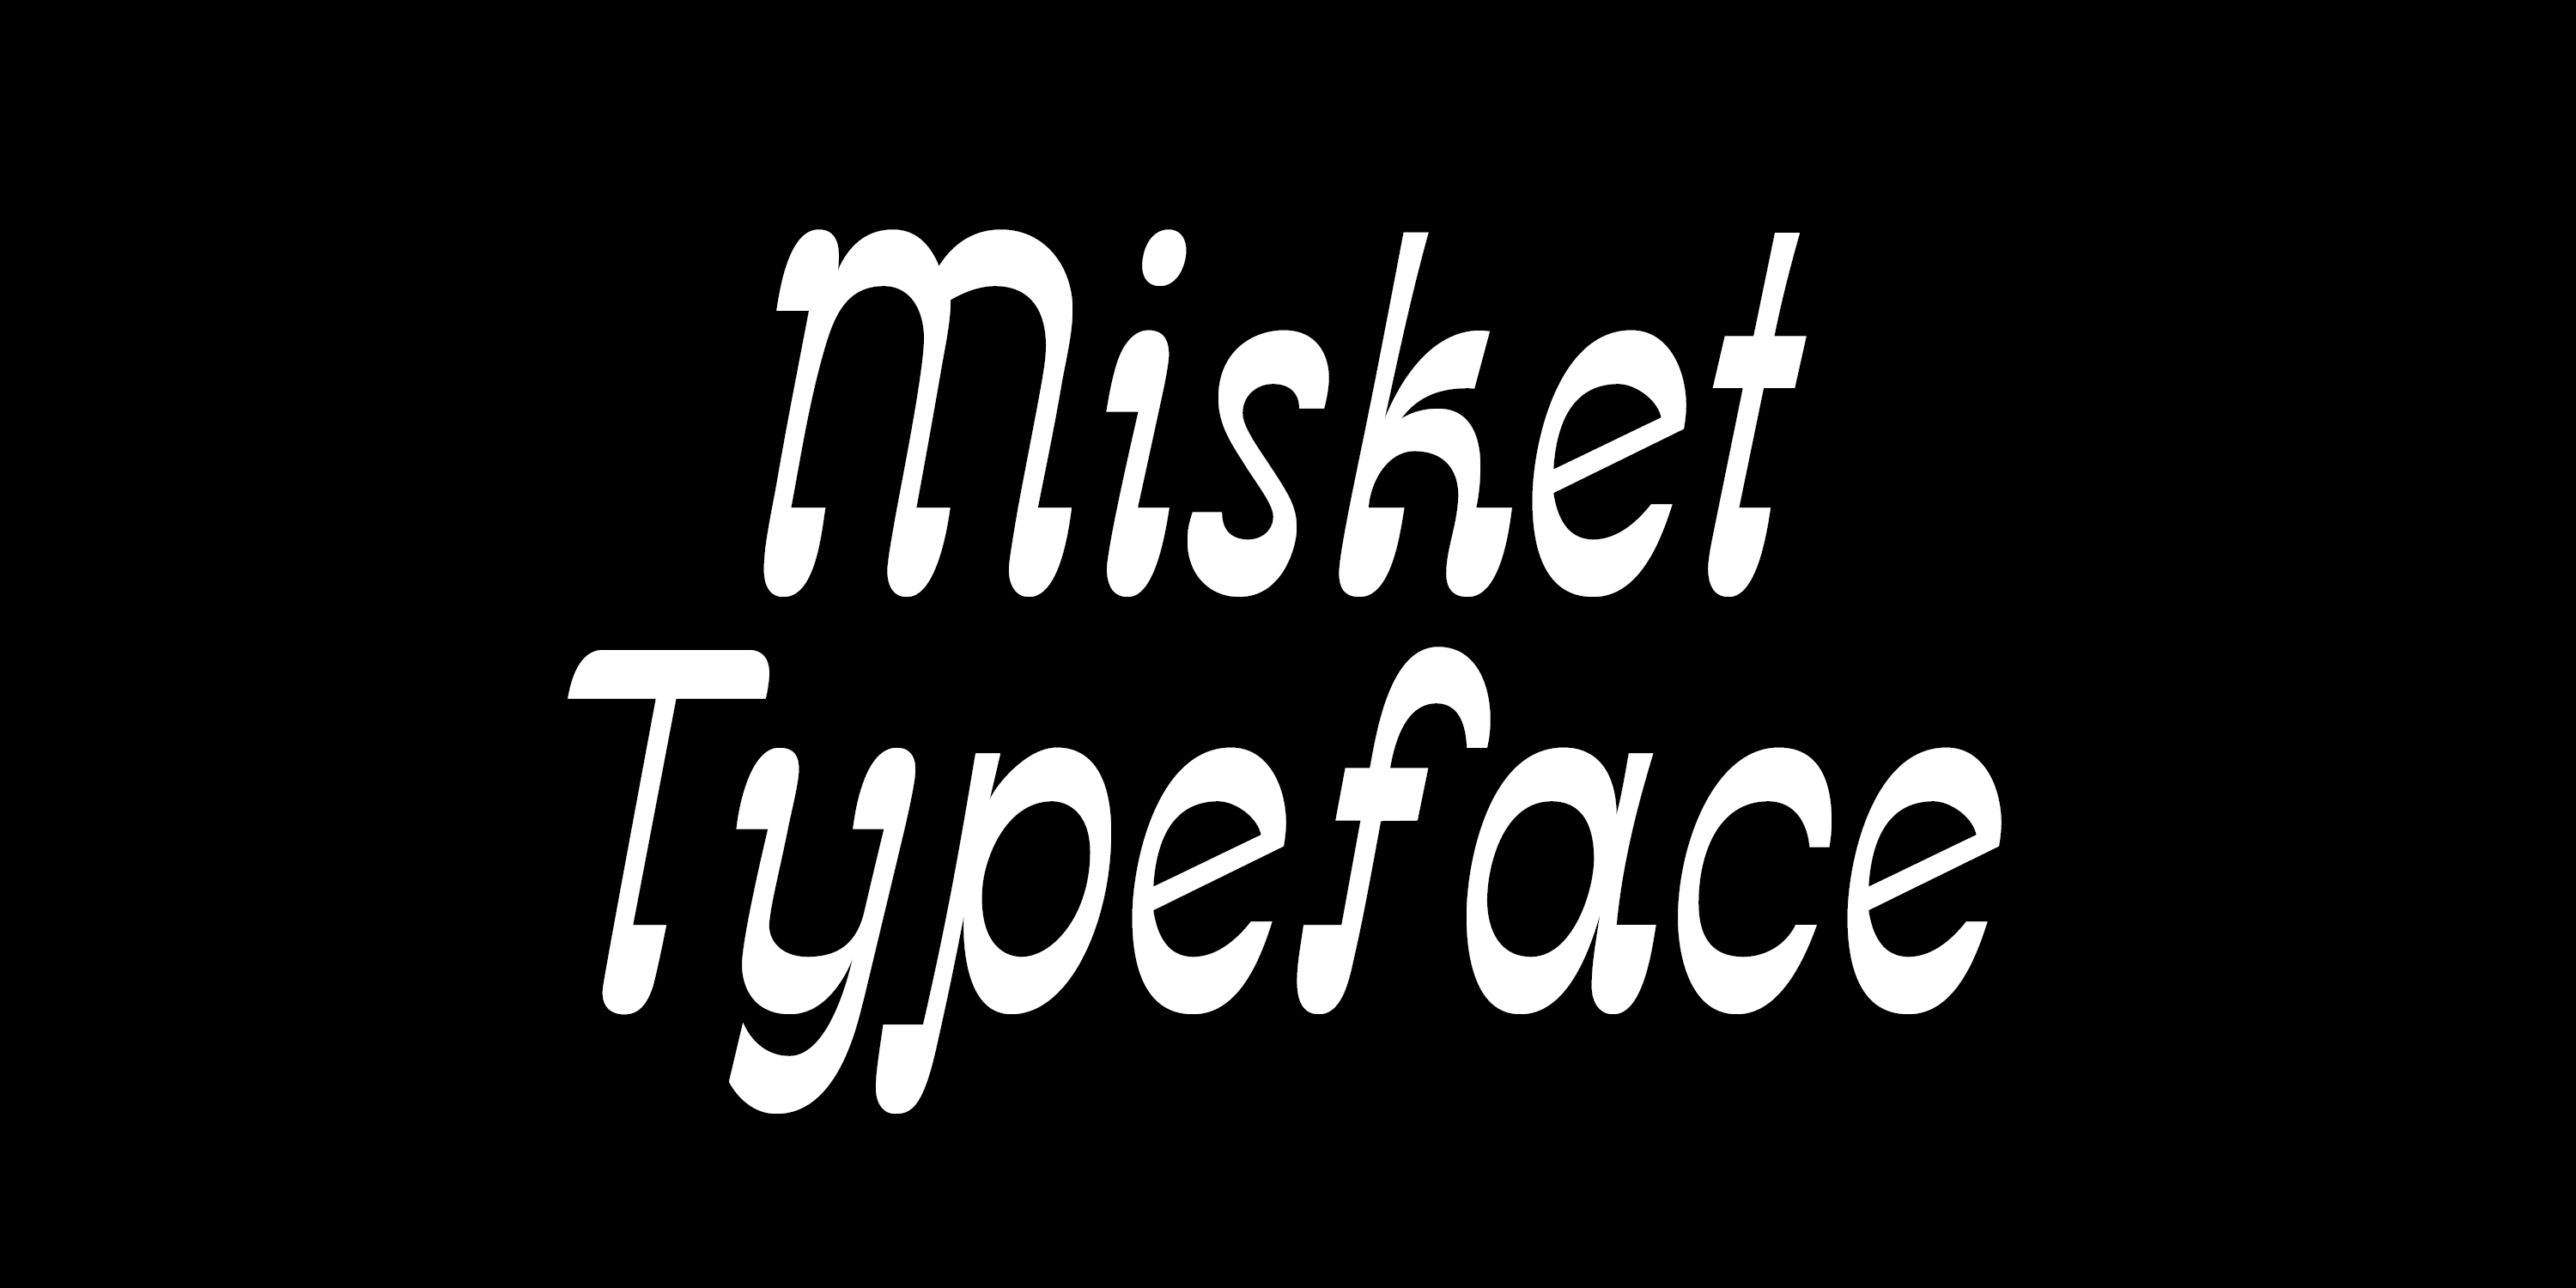 Name of the font written with Misket font